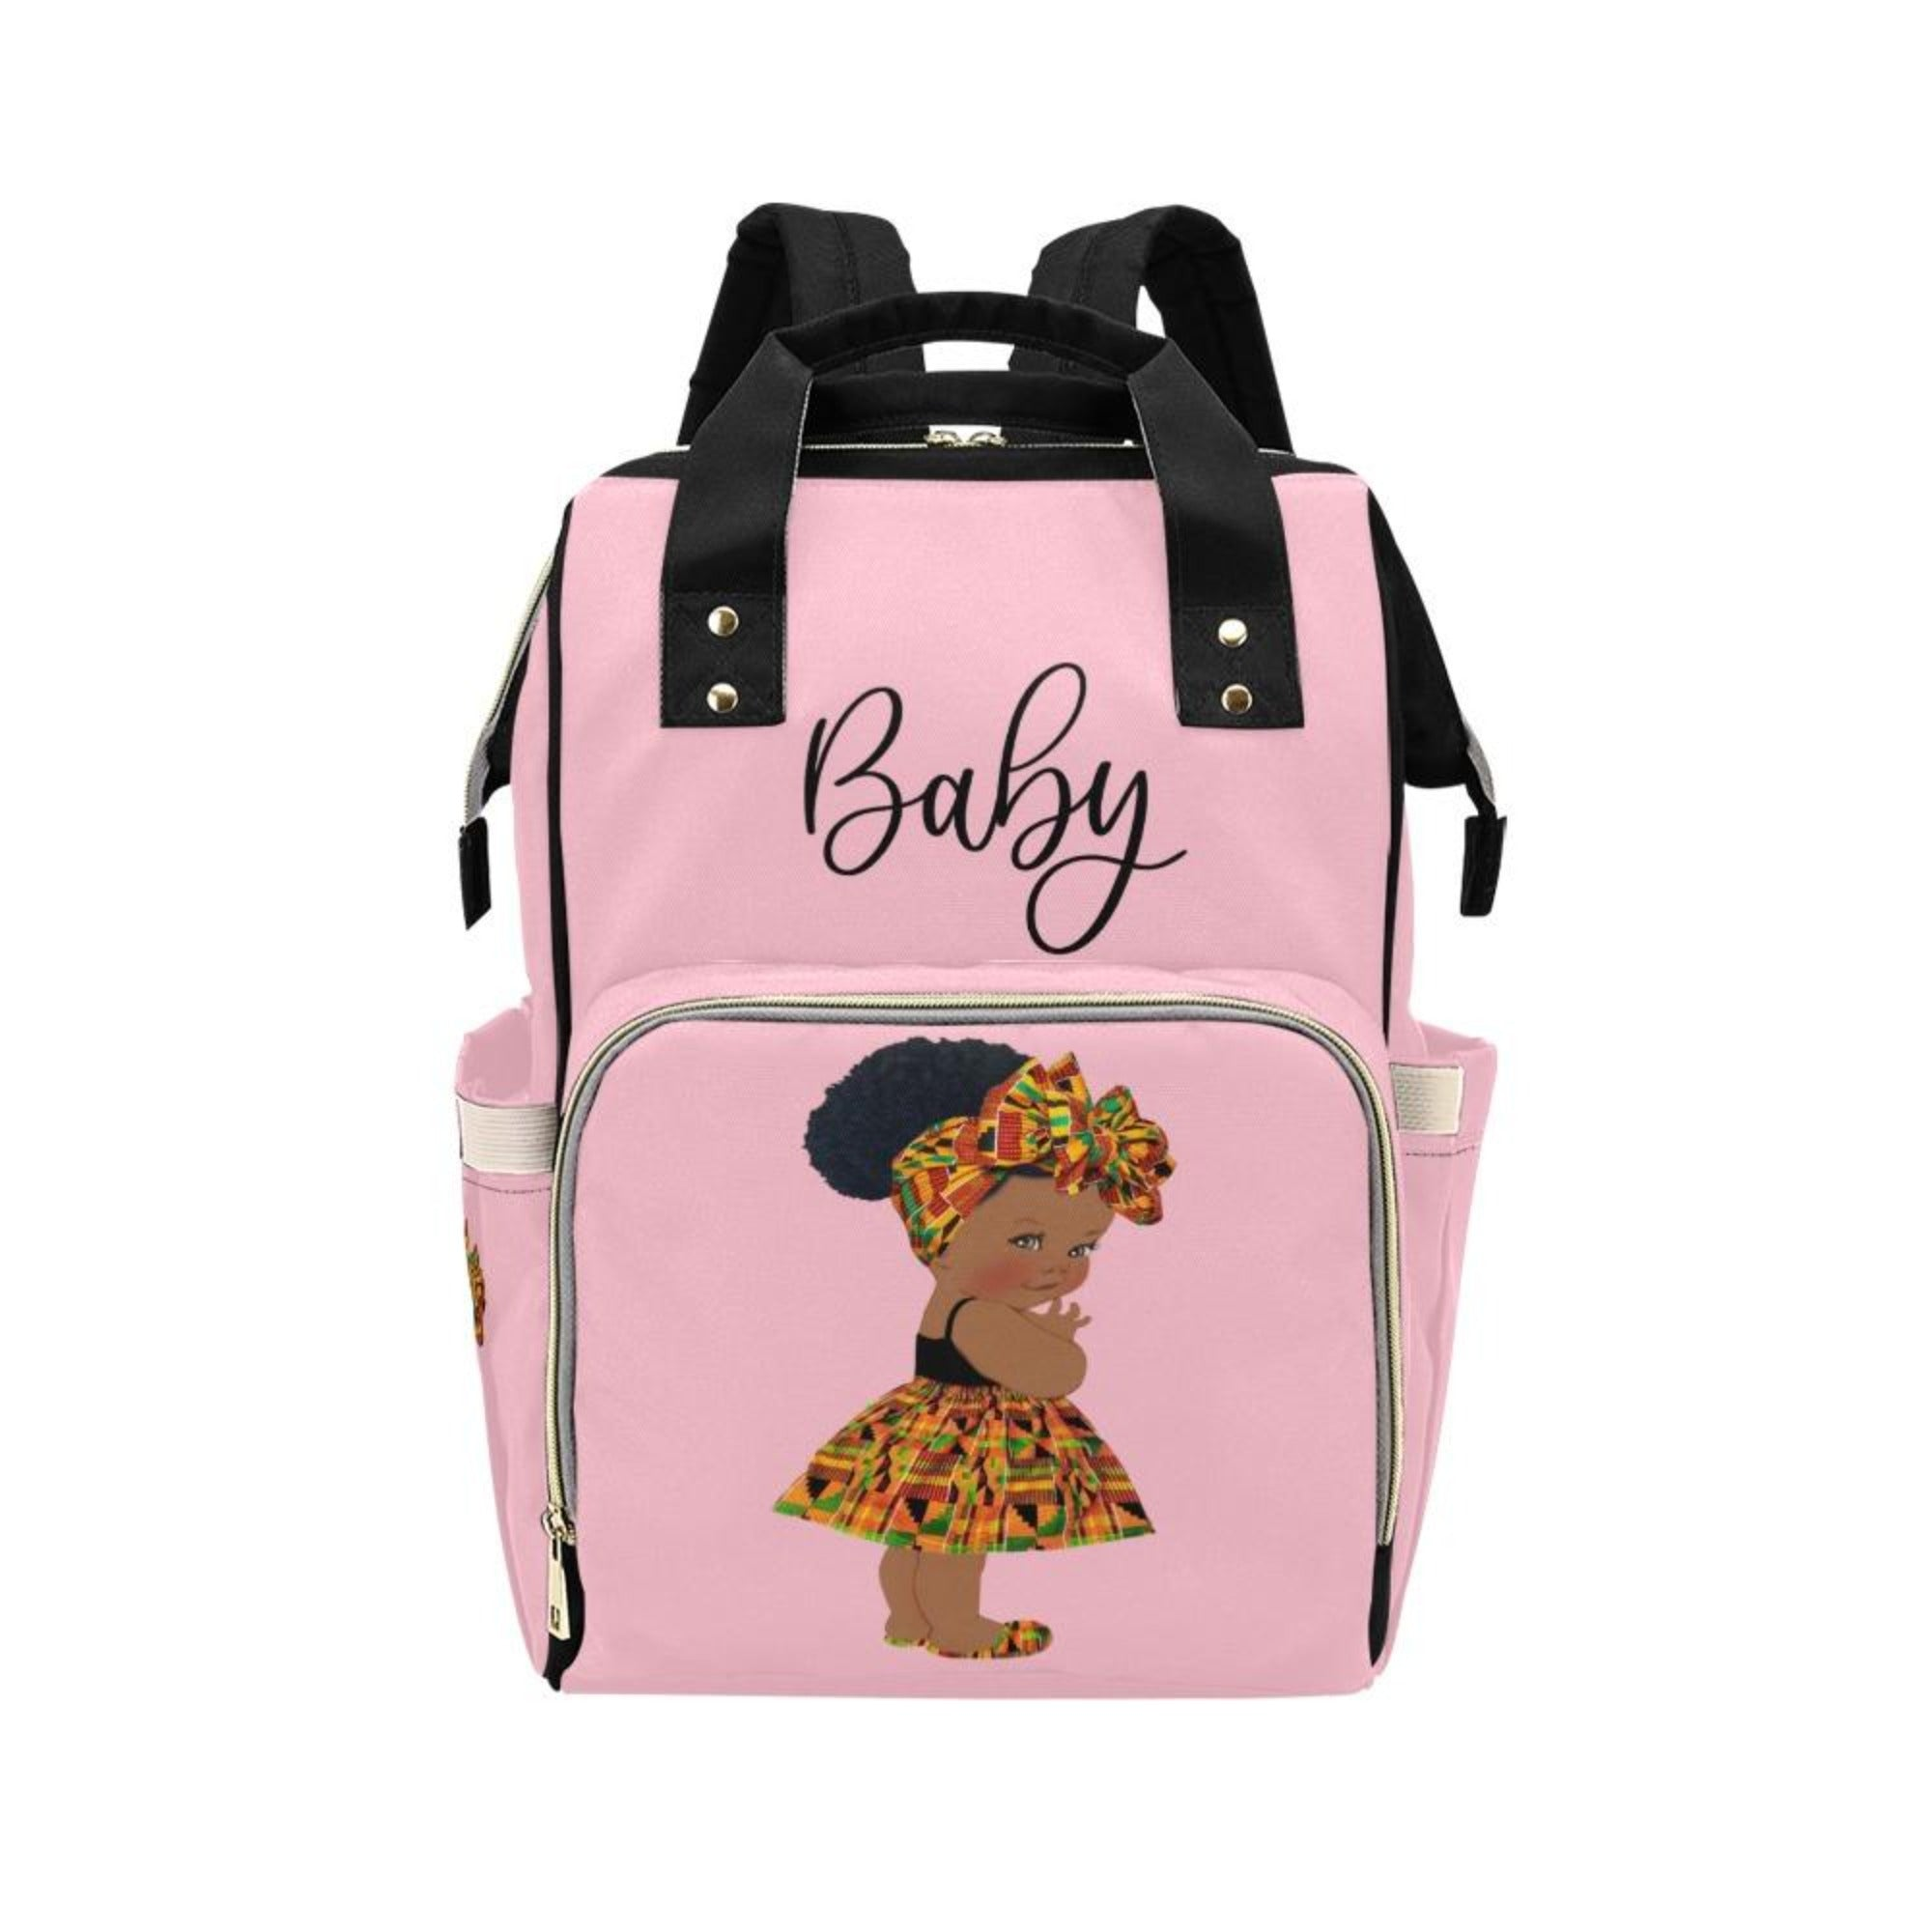 Designer Diaper Bag - Ethnic African American Baby Girl - Powder Pink Multi-Function Backpack